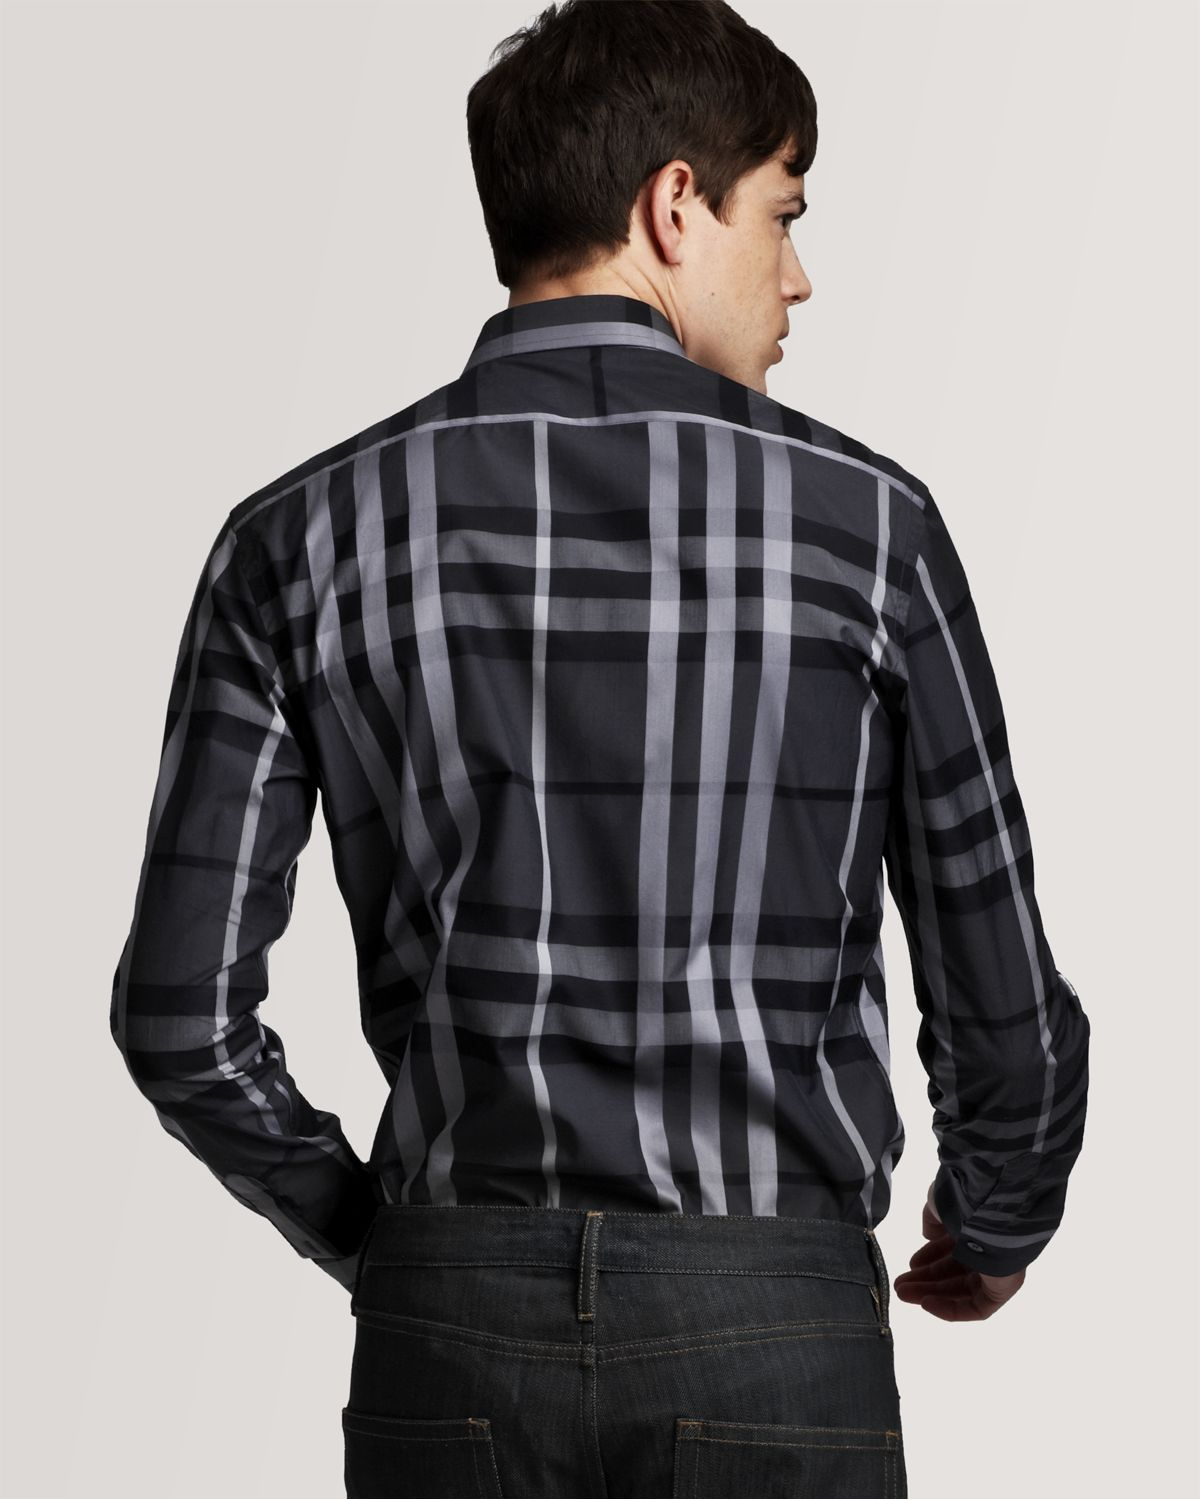 Burberry Dress Shirts For Men Images